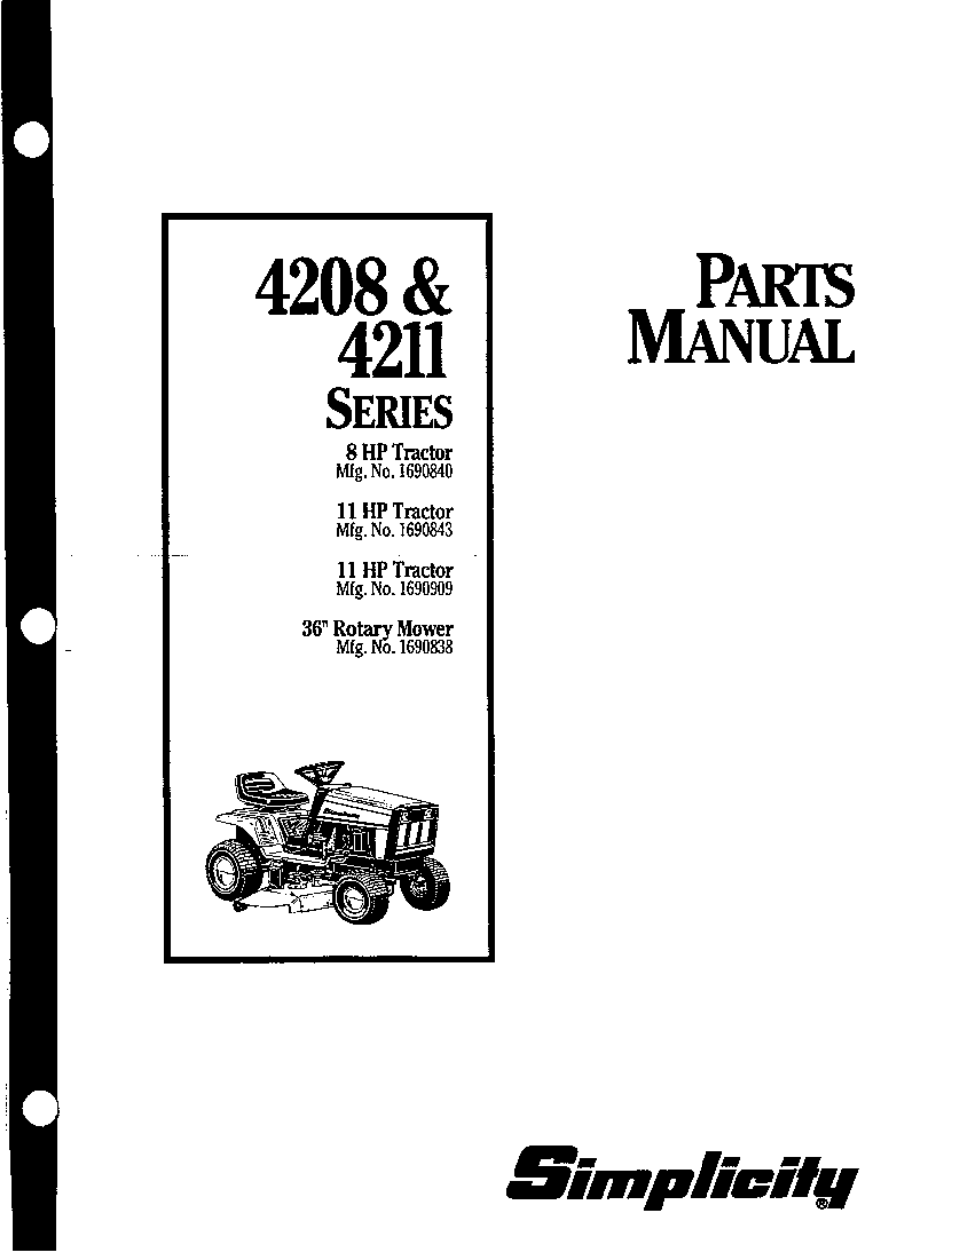 simplicity 4211 series parts manual free pdf download 46 pages rh manualagent com Simplicity Rear Engine Mower Simplicity Mower Deck Parts